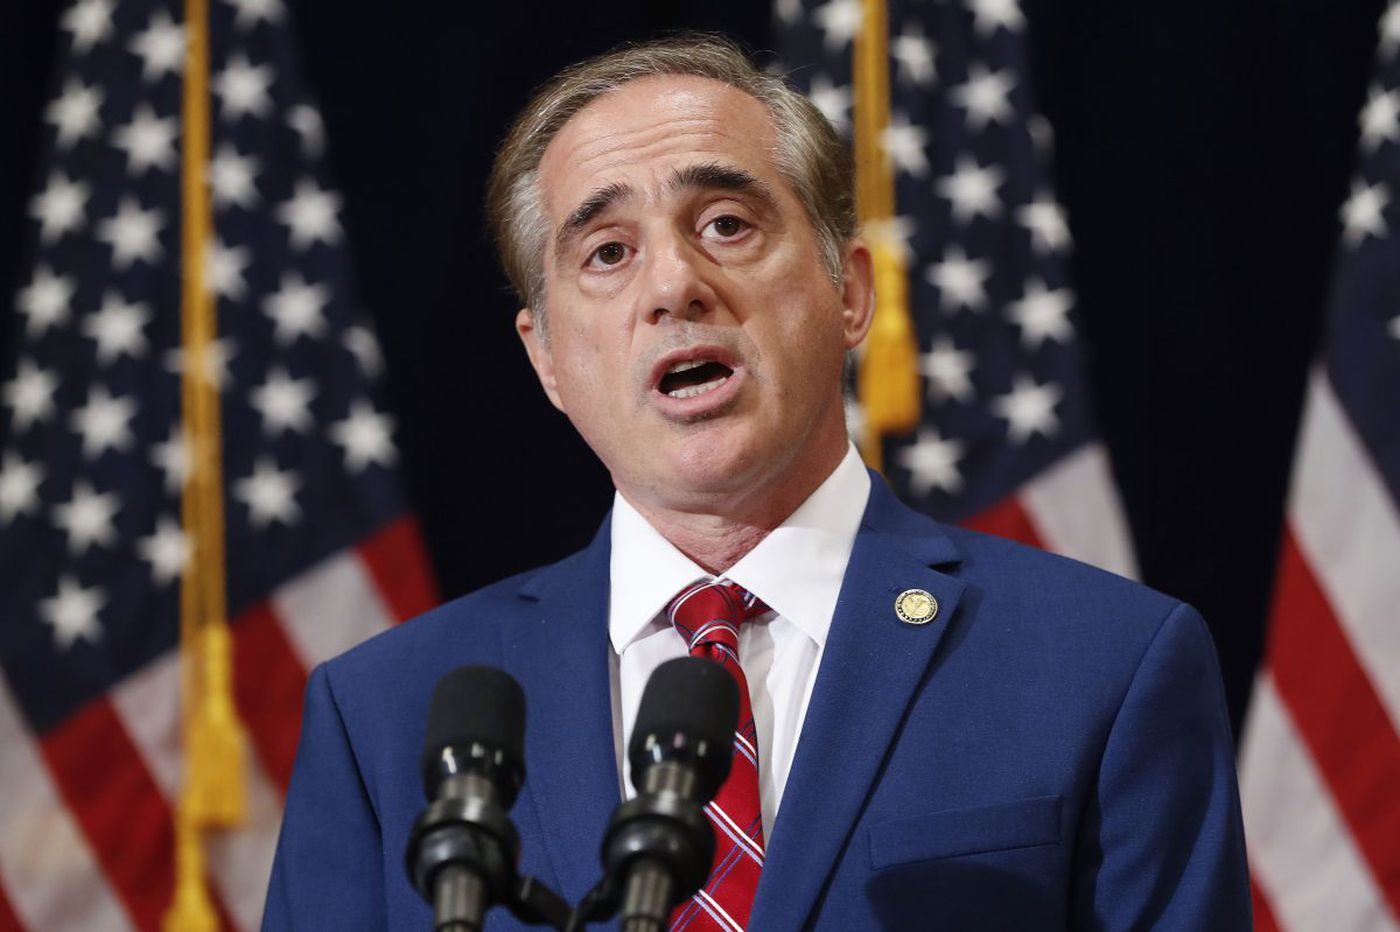 The VA is a national embarrassment, not a model to emulate | Opinion